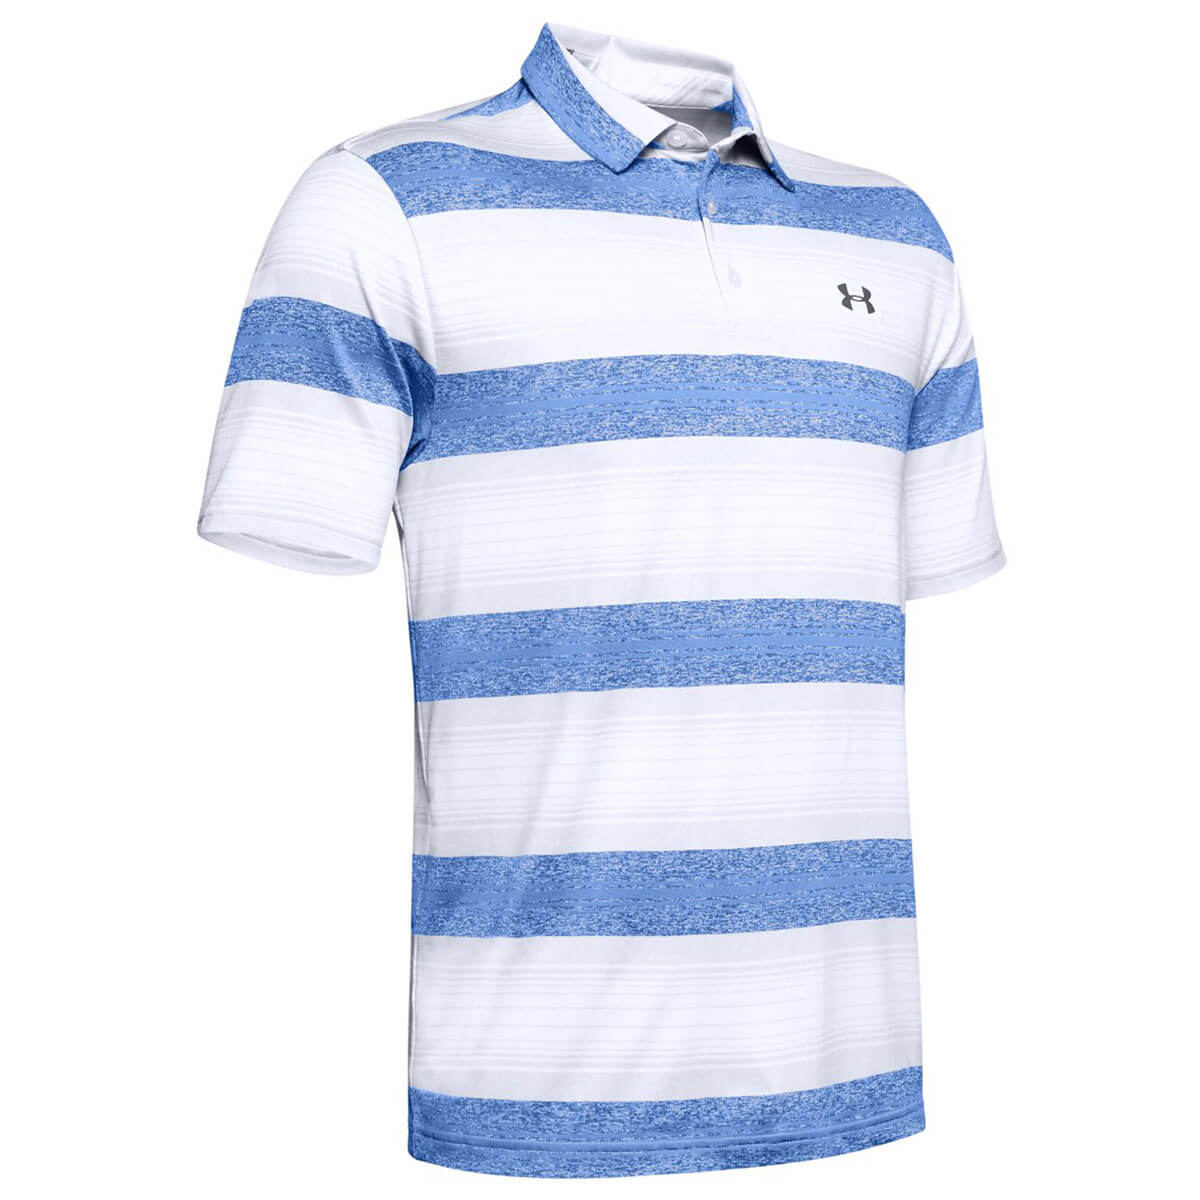 Under-Armour-Mens-2019-Playoff-Polo-2-0-Breathable-Light-Stretch-Polo-Shirt thumbnail 130